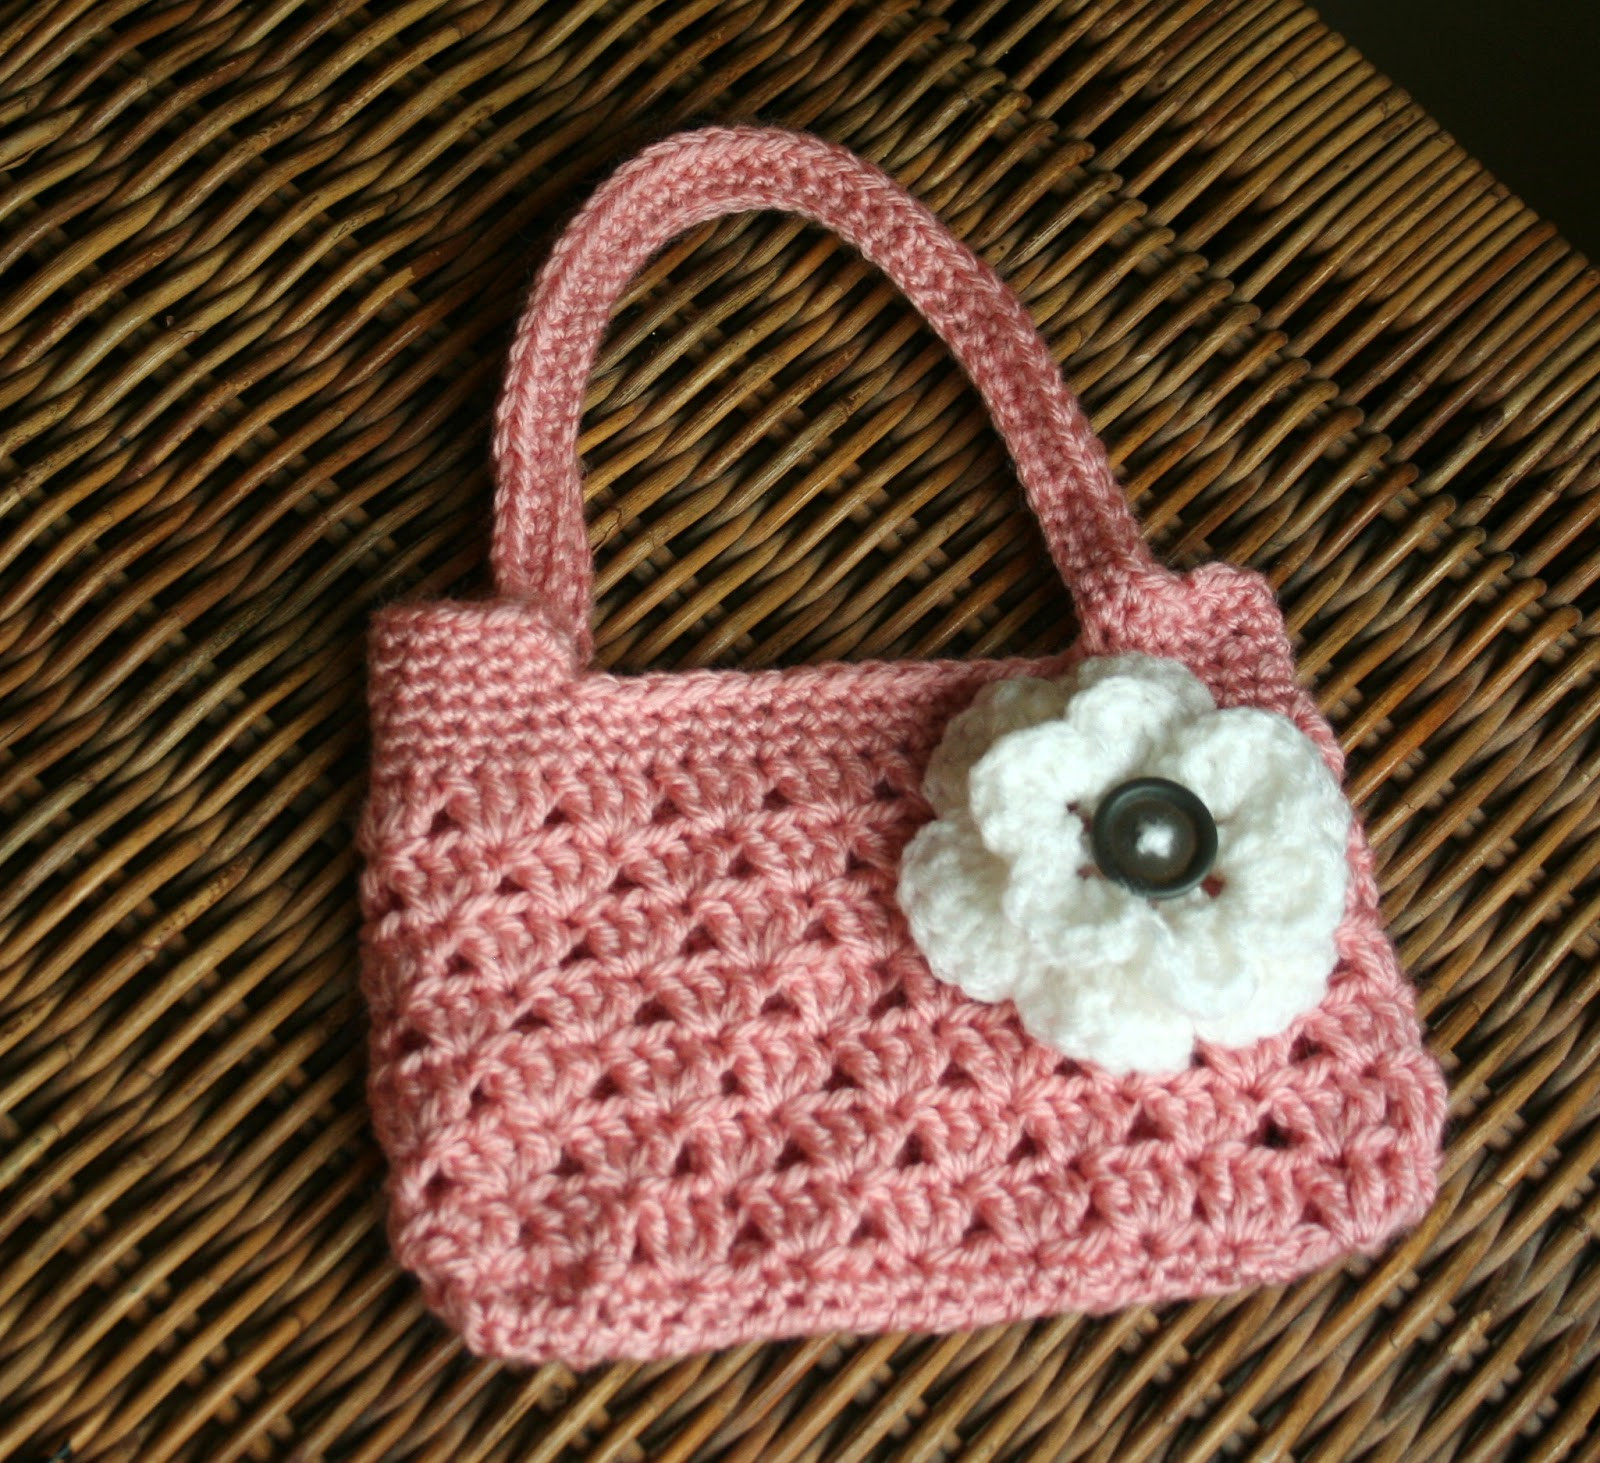 Free Crochet Patterns Awesome Tampa Bay Crochet Free Easy Crochet Purse Pattern Of New 41 Photos Free Crochet Patterns